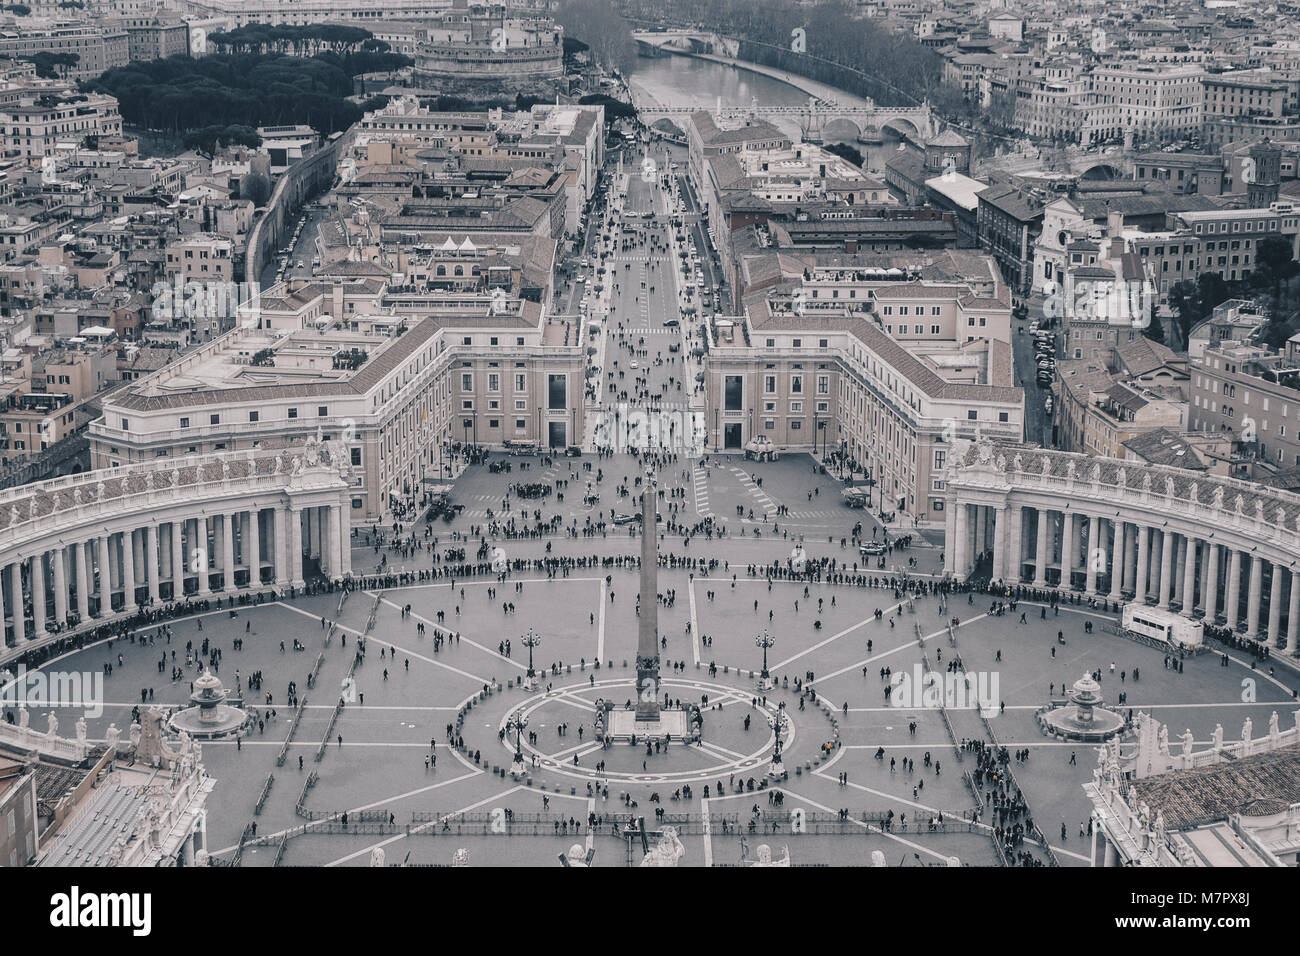 Vatican Saint Peter Square as seen from above, black and white version - Stock Image